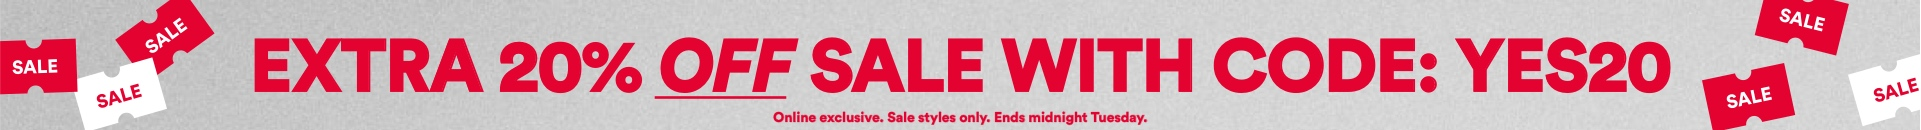 Extra 20 Off Sale. With Code: YES20. Click to Shop.